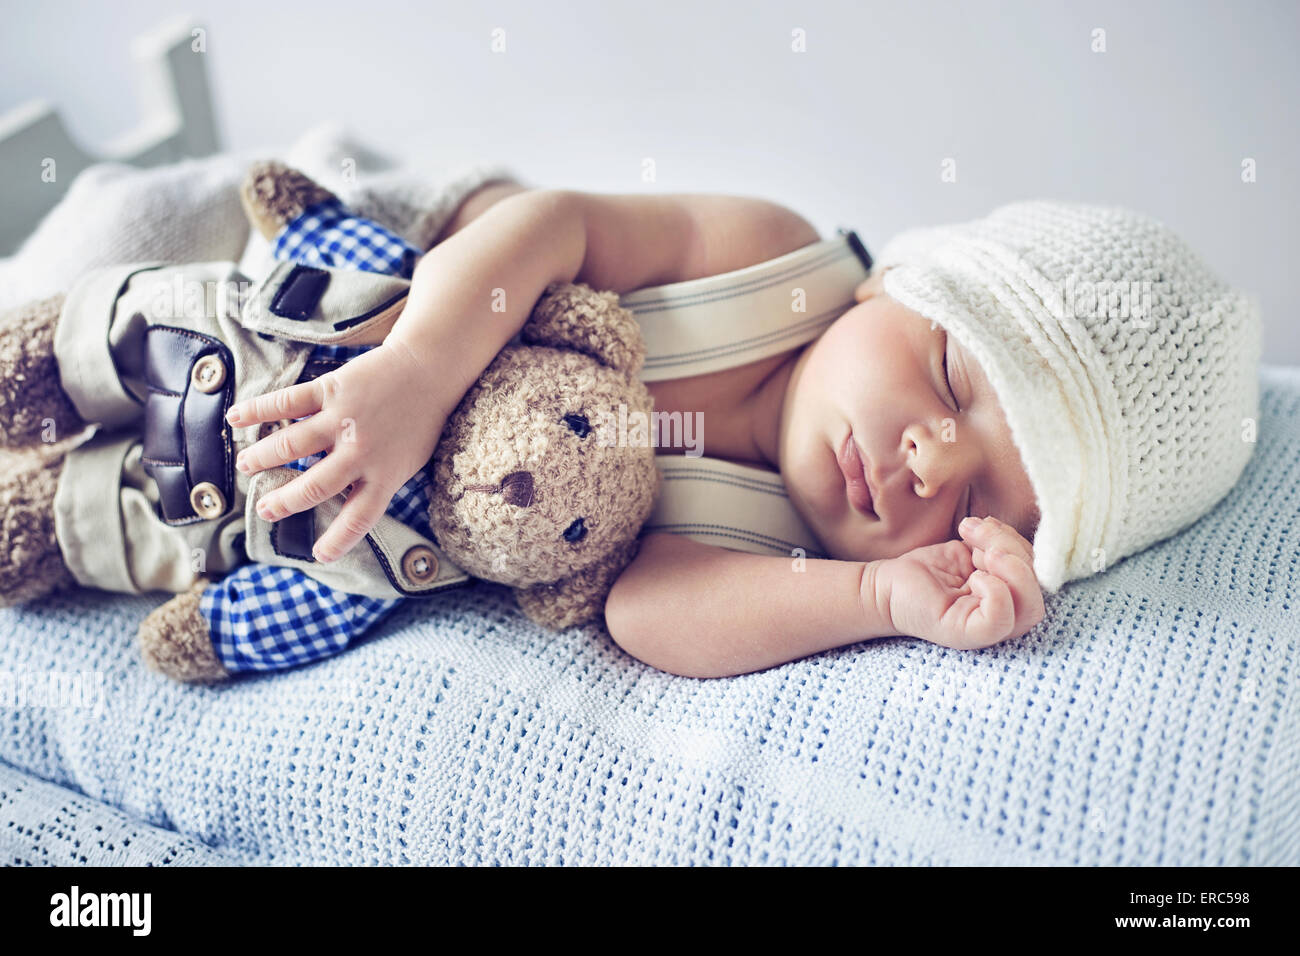 Newborn child sleeping with a teddy bear toy - Stock Image